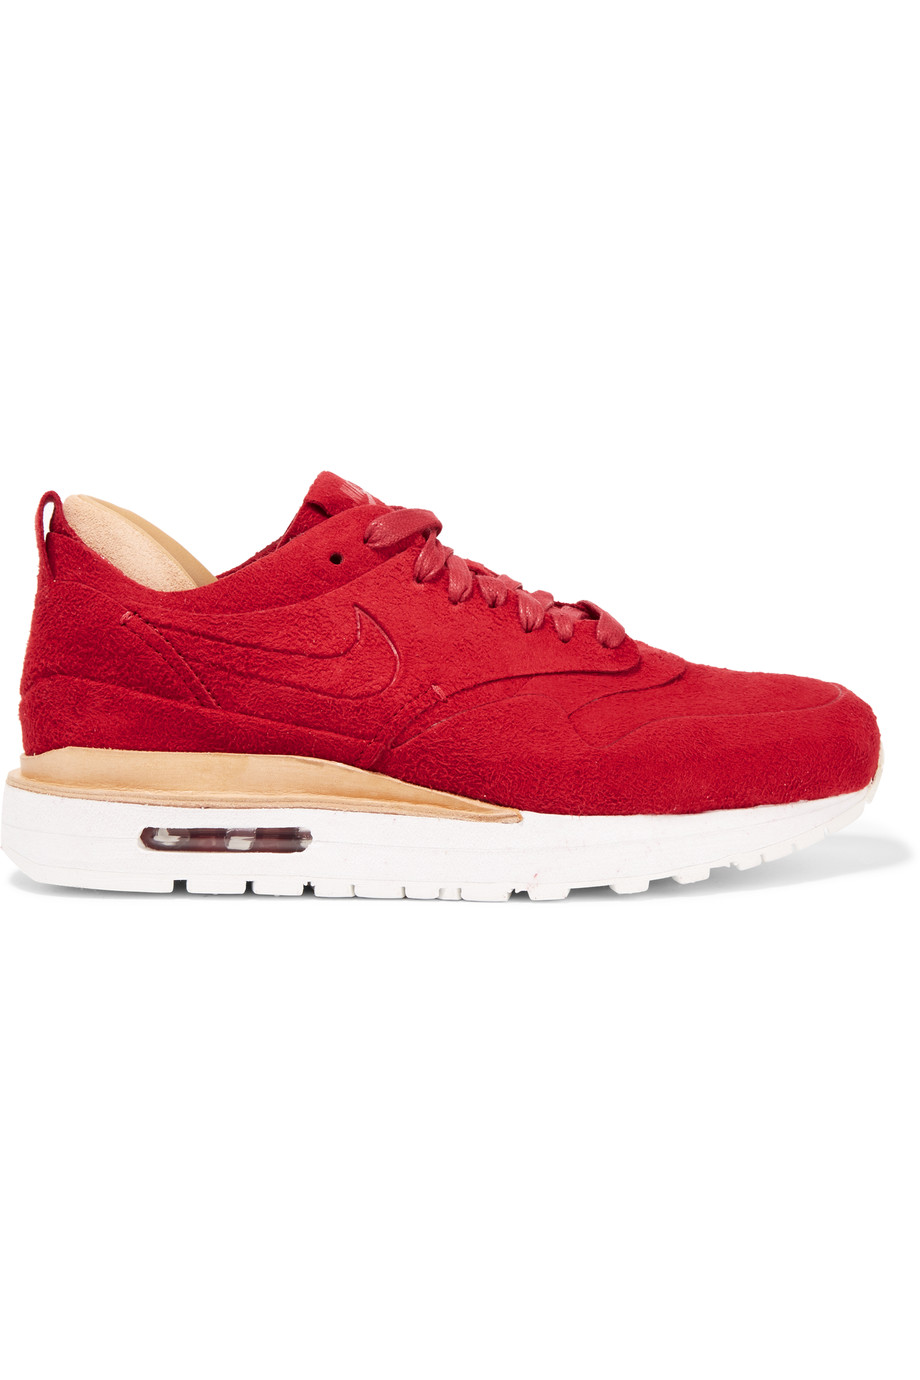 the best attitude da829 38241 NIKE AIR MAX 1 ROYAL SUEDE AND LEATHER SNEAKERS, GYM RED